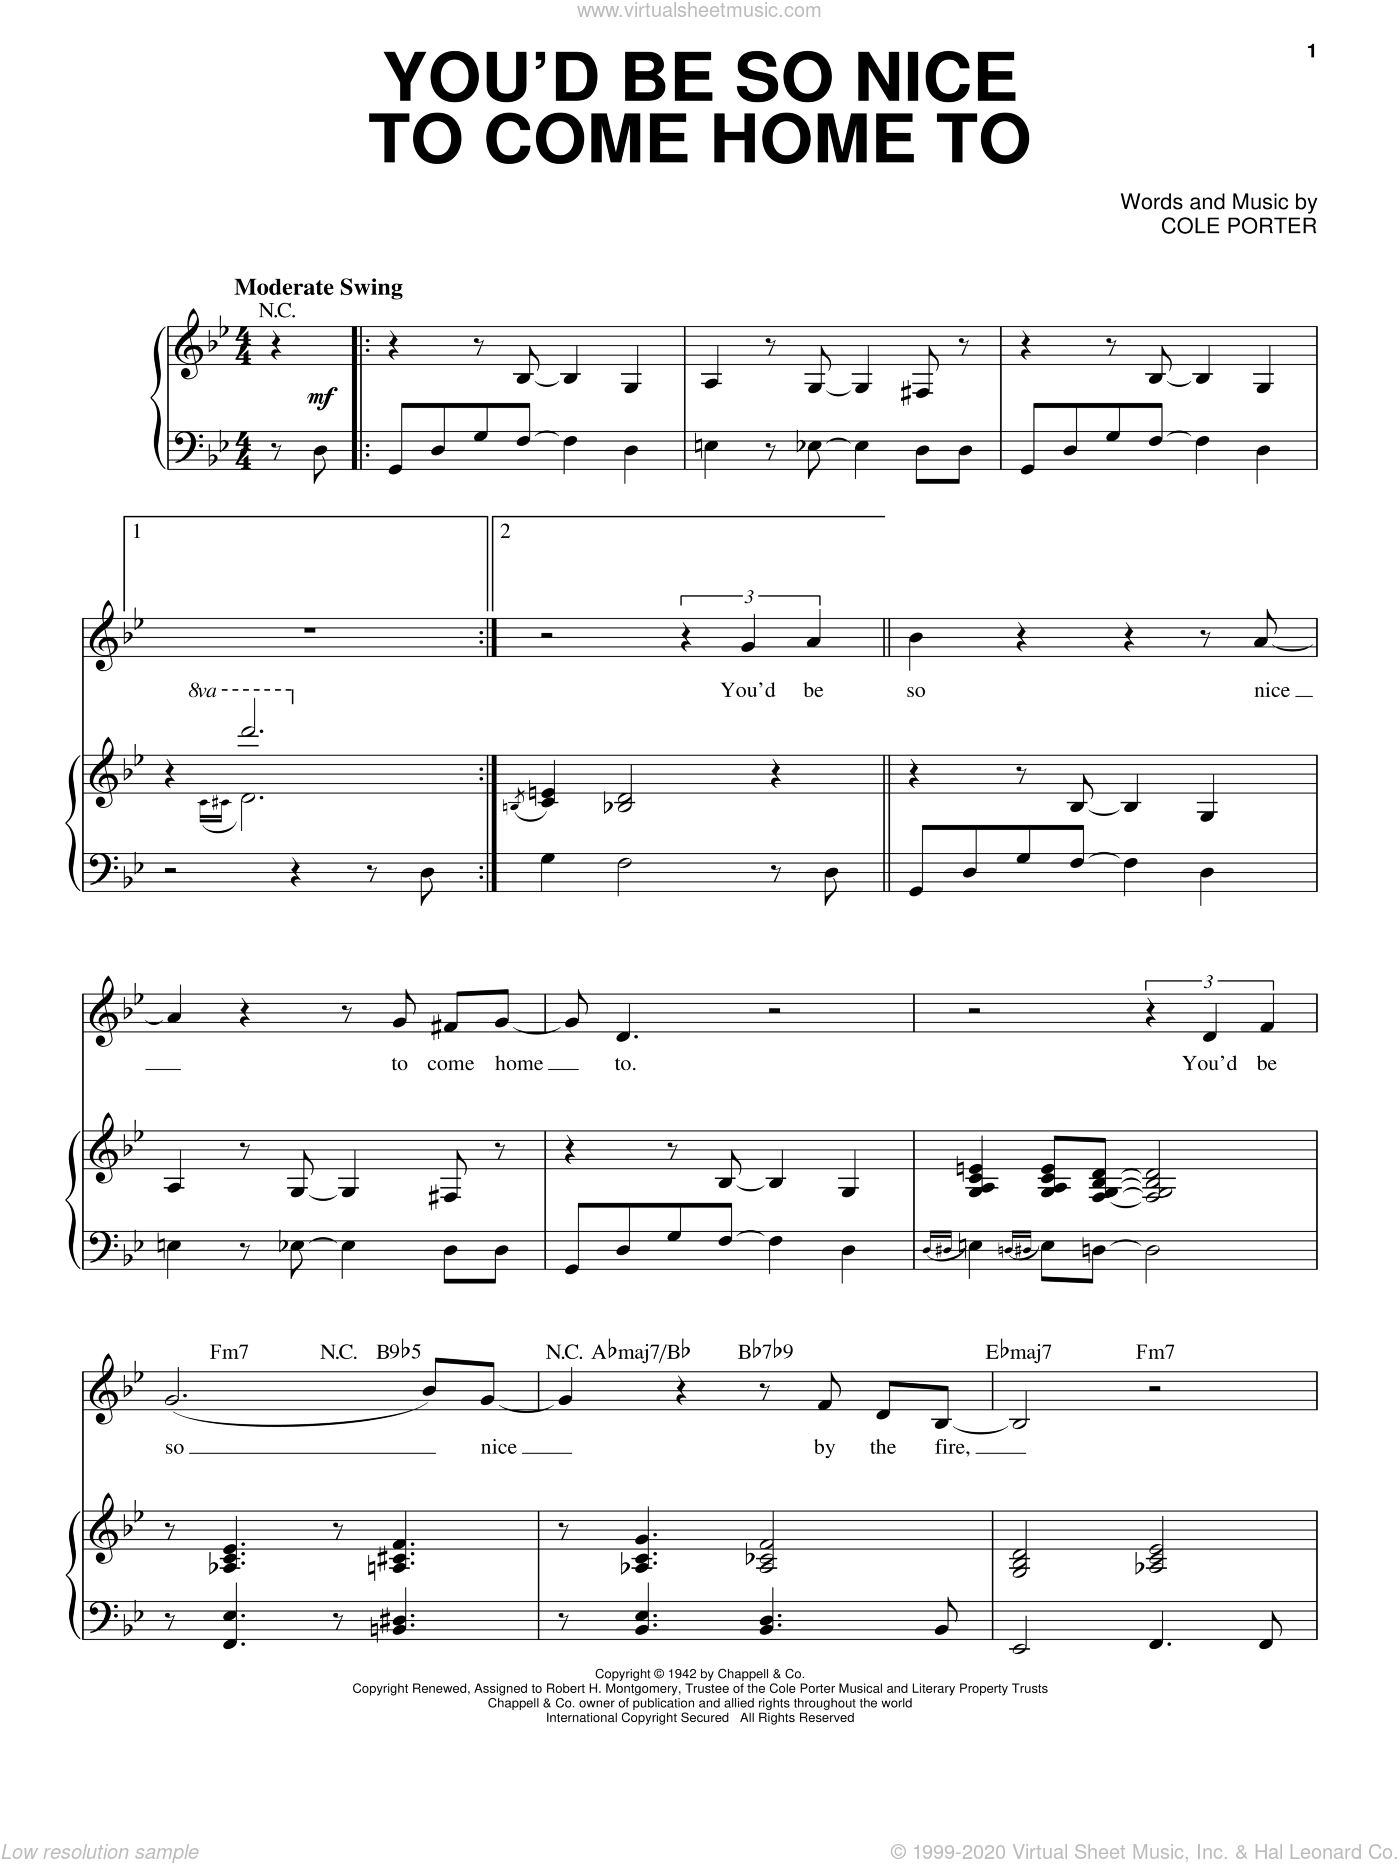 You'd Be So Nice To Come Home To sheet music for voice and piano by Steve Tyrell and Cole Porter. Score Image Preview.